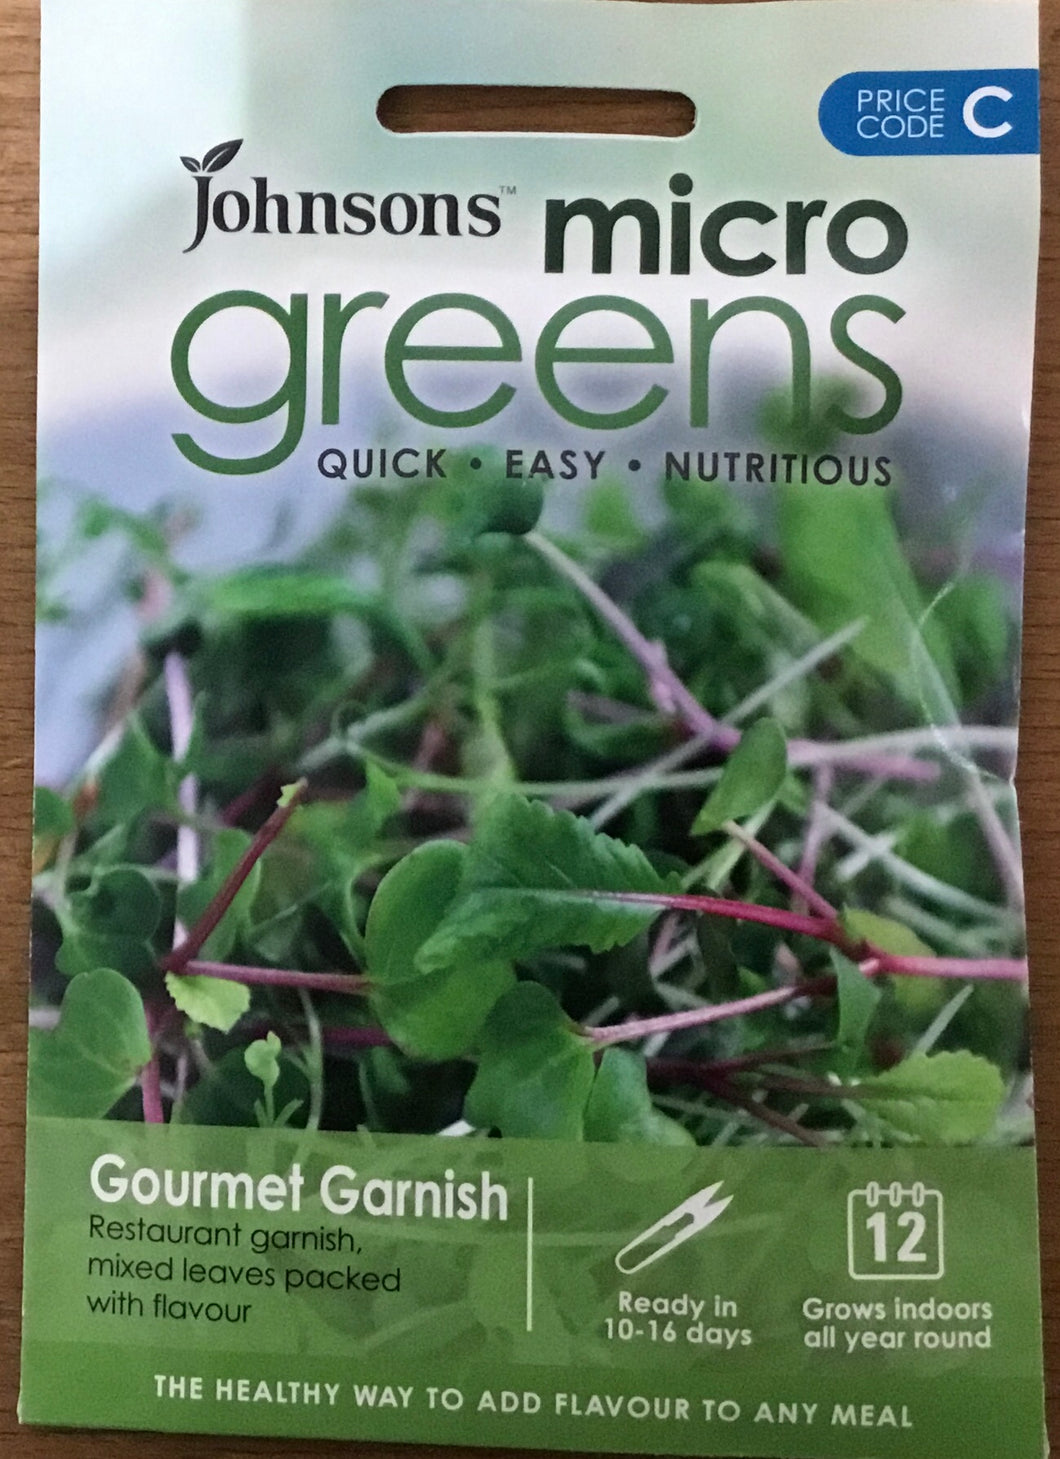 Gourmet Garnish mixed leaves Micro Greens